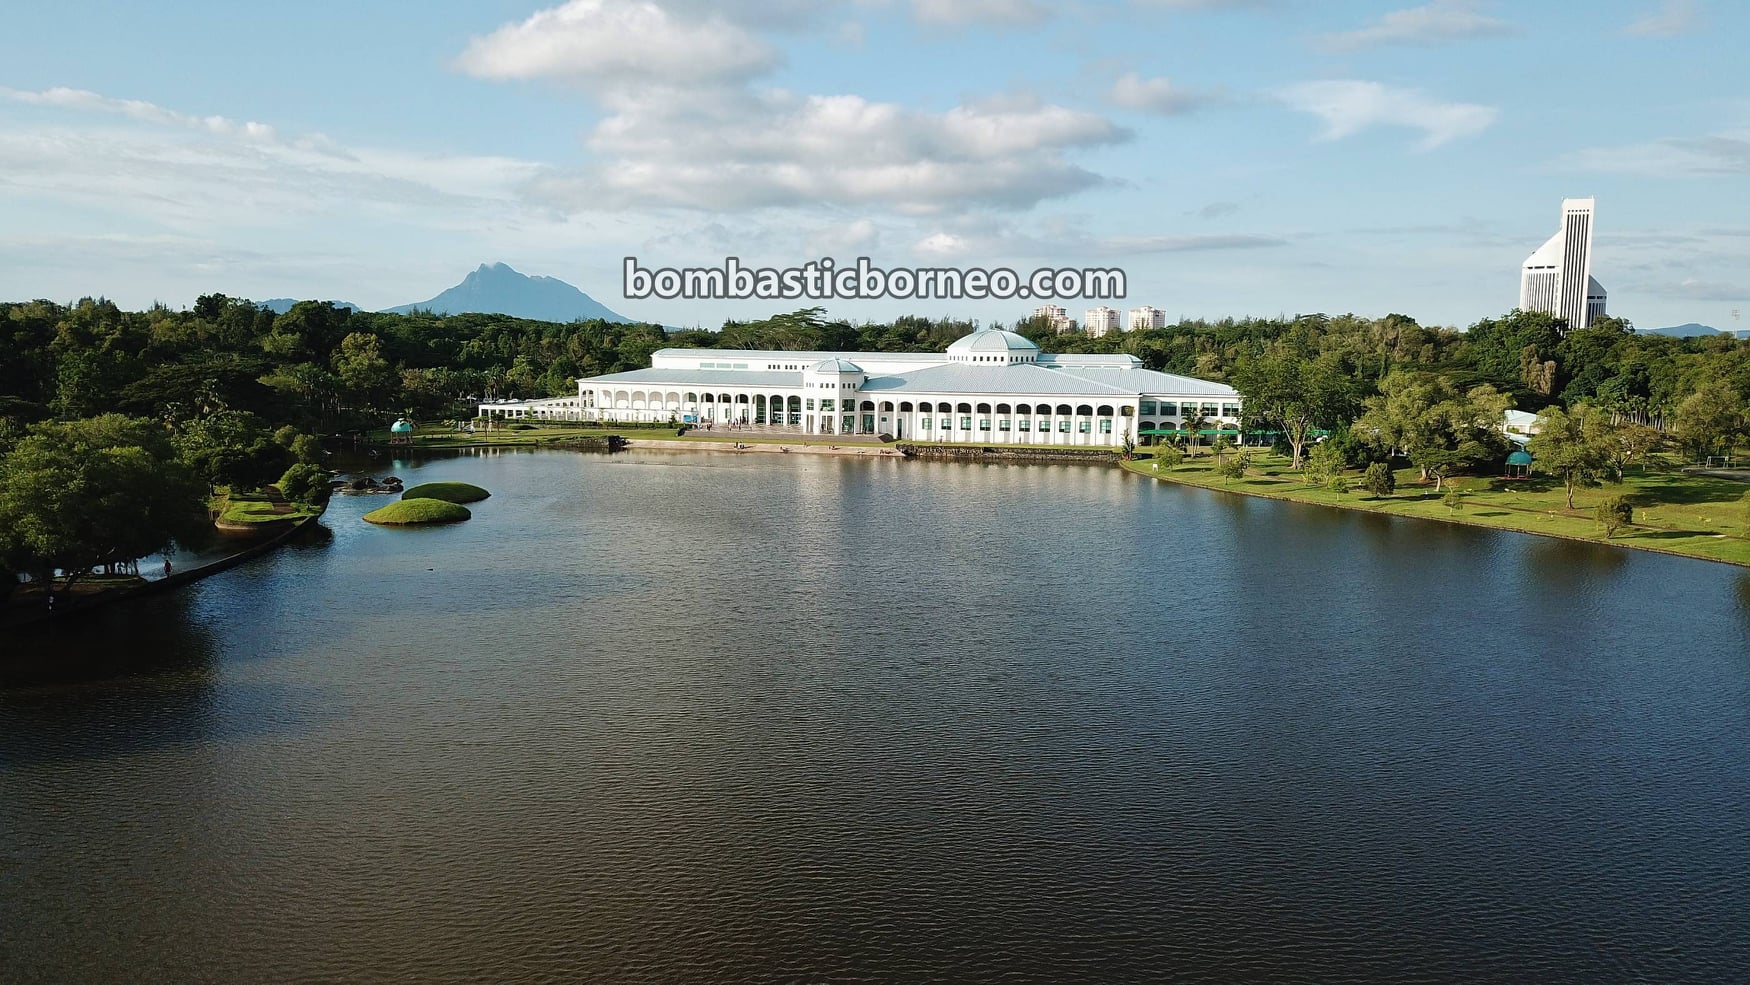 Sarawak State Library, tempat senaman, aerobic, jogging, walking, outdoor, exercise, garden park, manmade lake, Borneo, Tourism, tourist attraction, 砂拉越州立图书馆, 探索婆罗洲马来西亚, 古晋运动旅游景点,